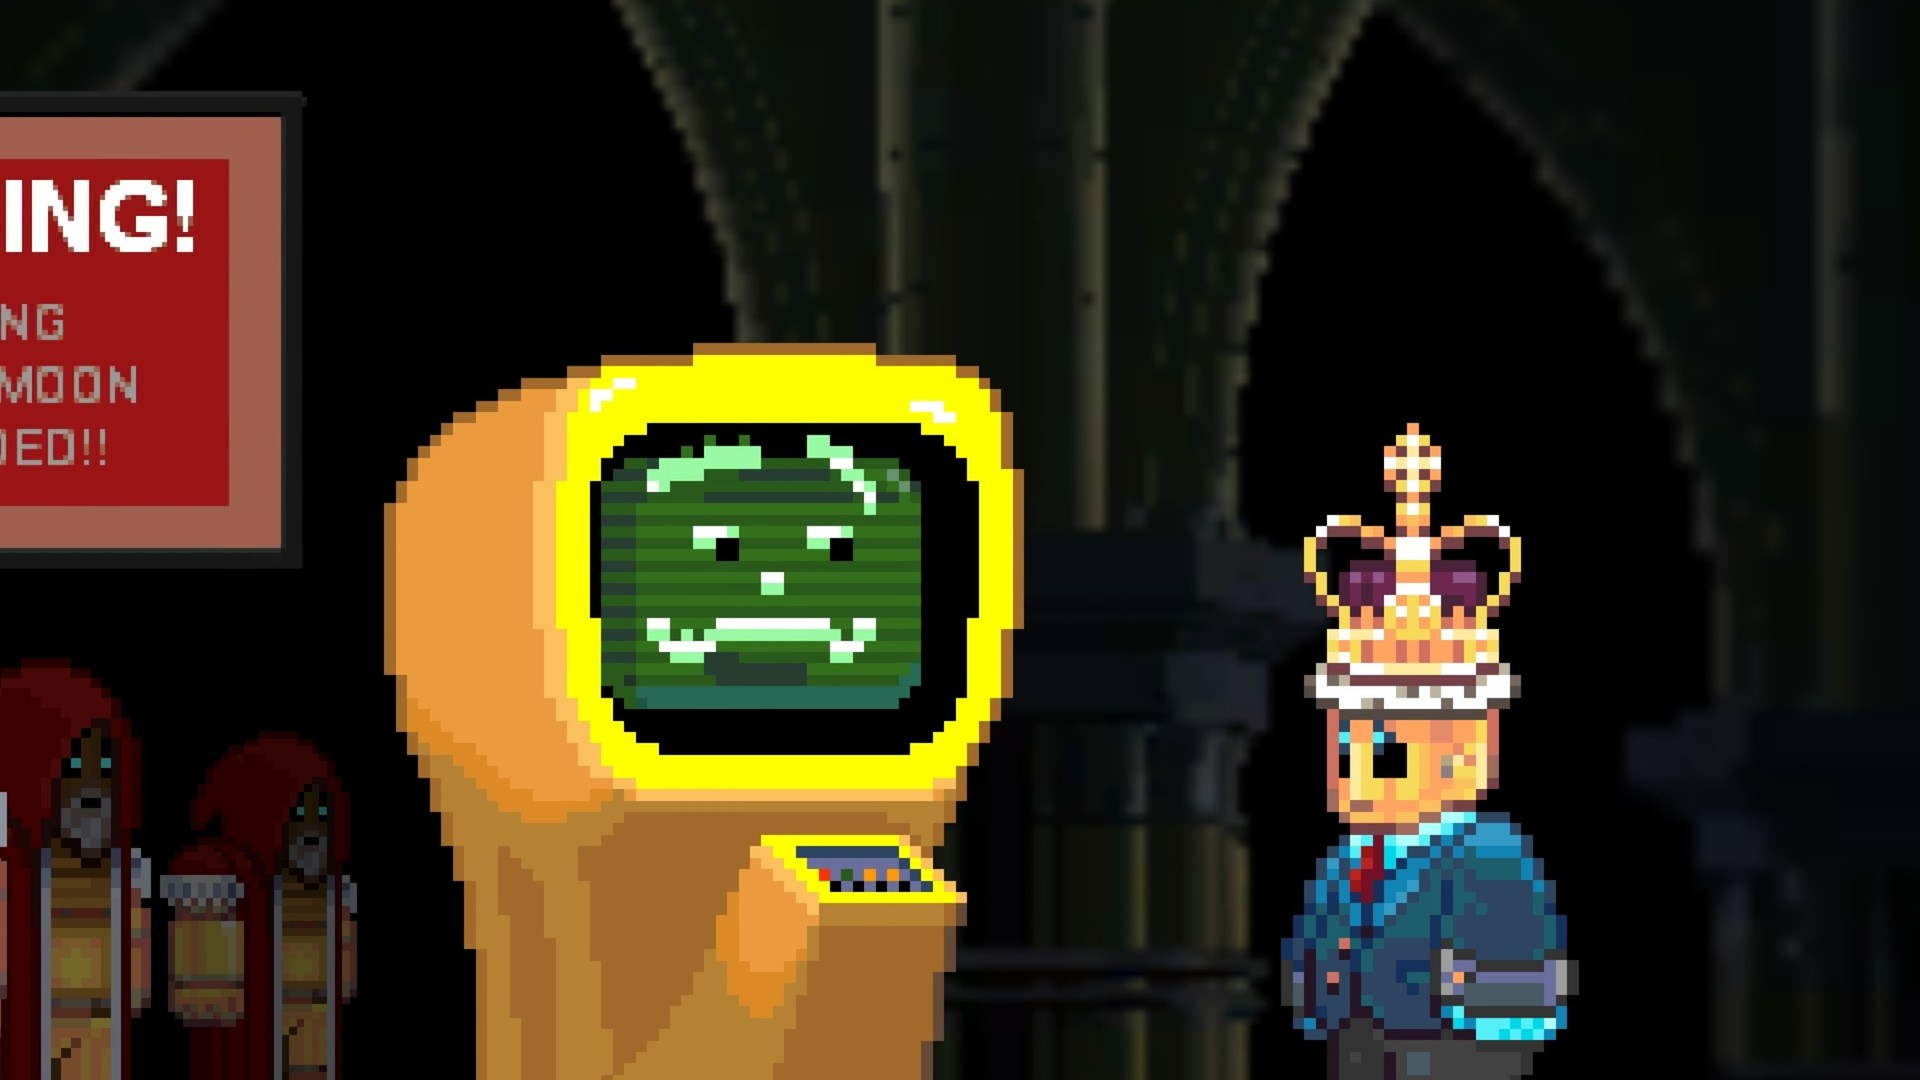 A screenshot from the indie game Horace, with the titular robot wearing a crown while looking at a computer monitor with a face